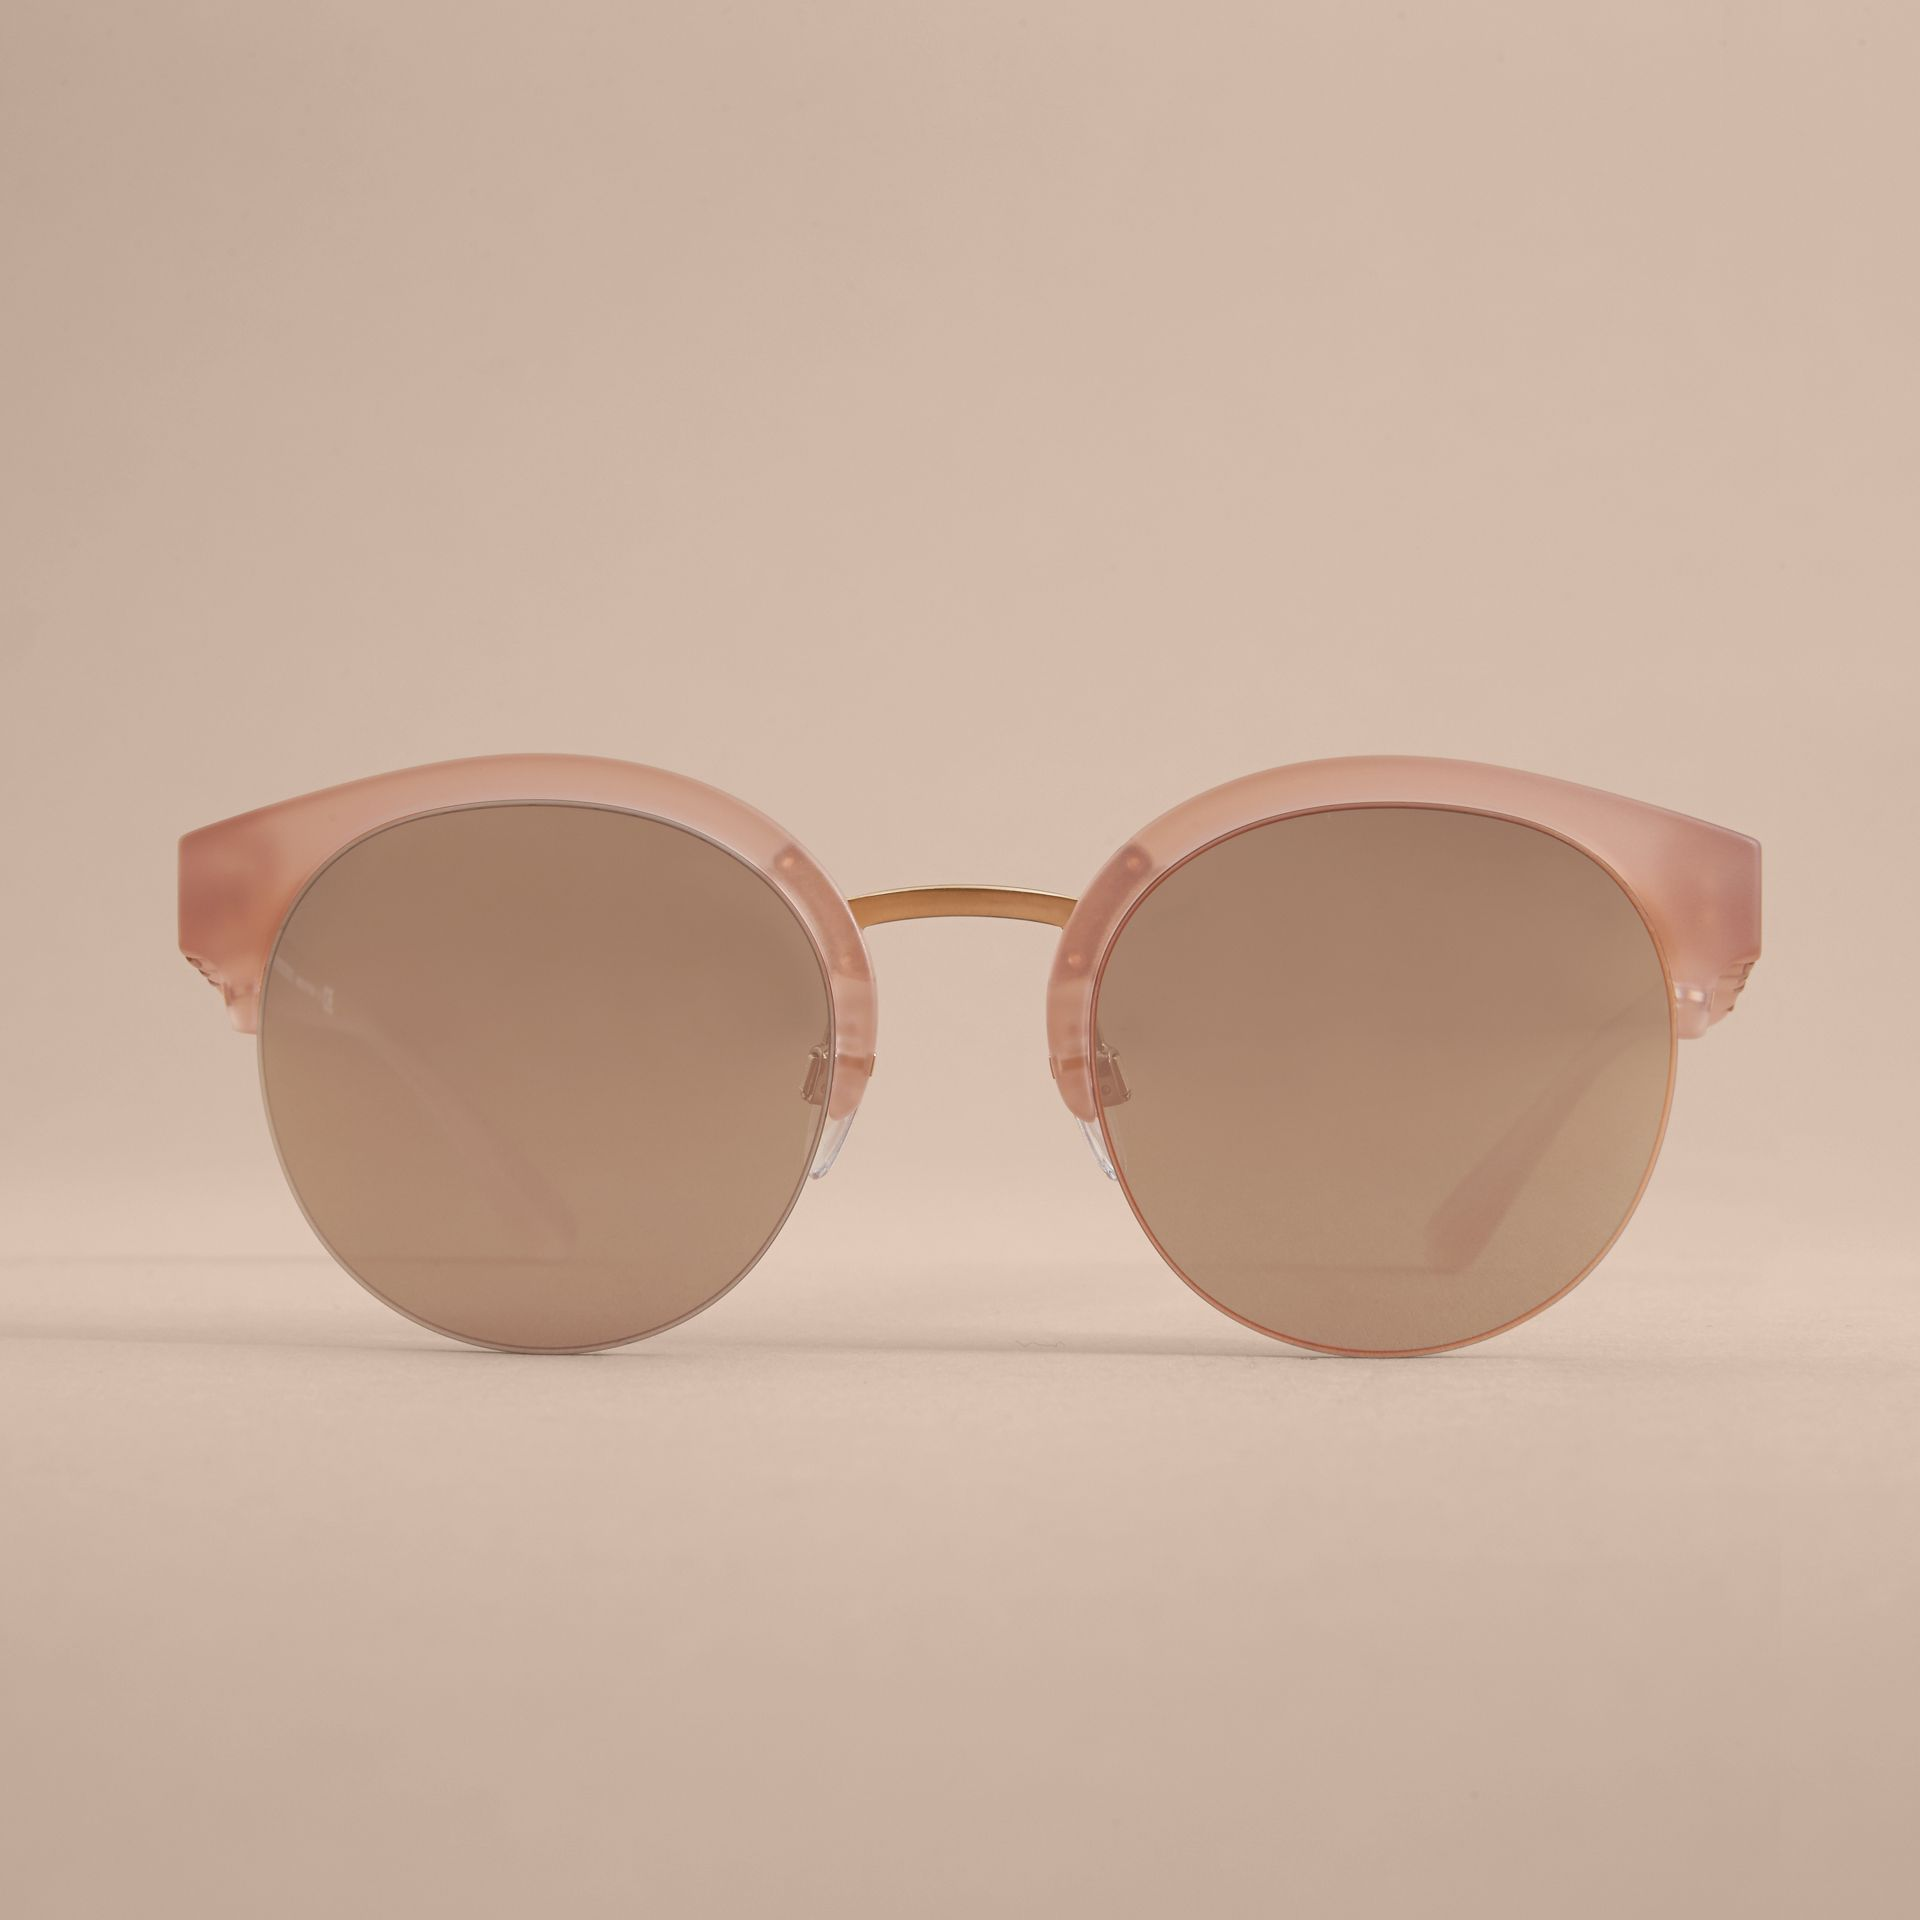 Check Detail Round Half-frame Sunglasses in Nude - Women | Burberry Canada - gallery image 3